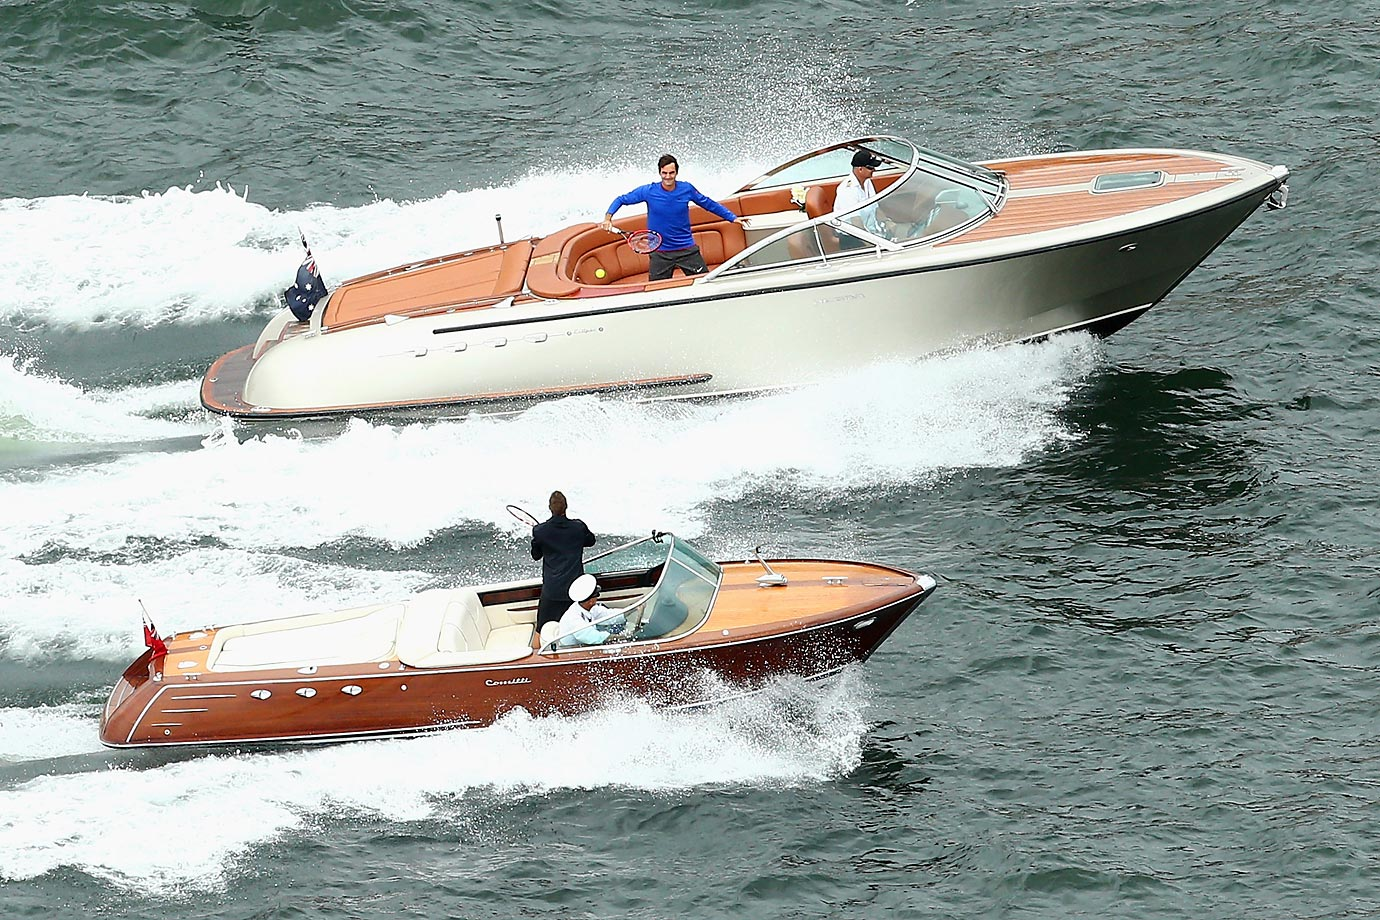 Roger Federer pretends to play tennis with Lleyton Hewitt between speedboats on Sydney Harbour ahead of their Fast 4 Exhibition match on Jan. 12.